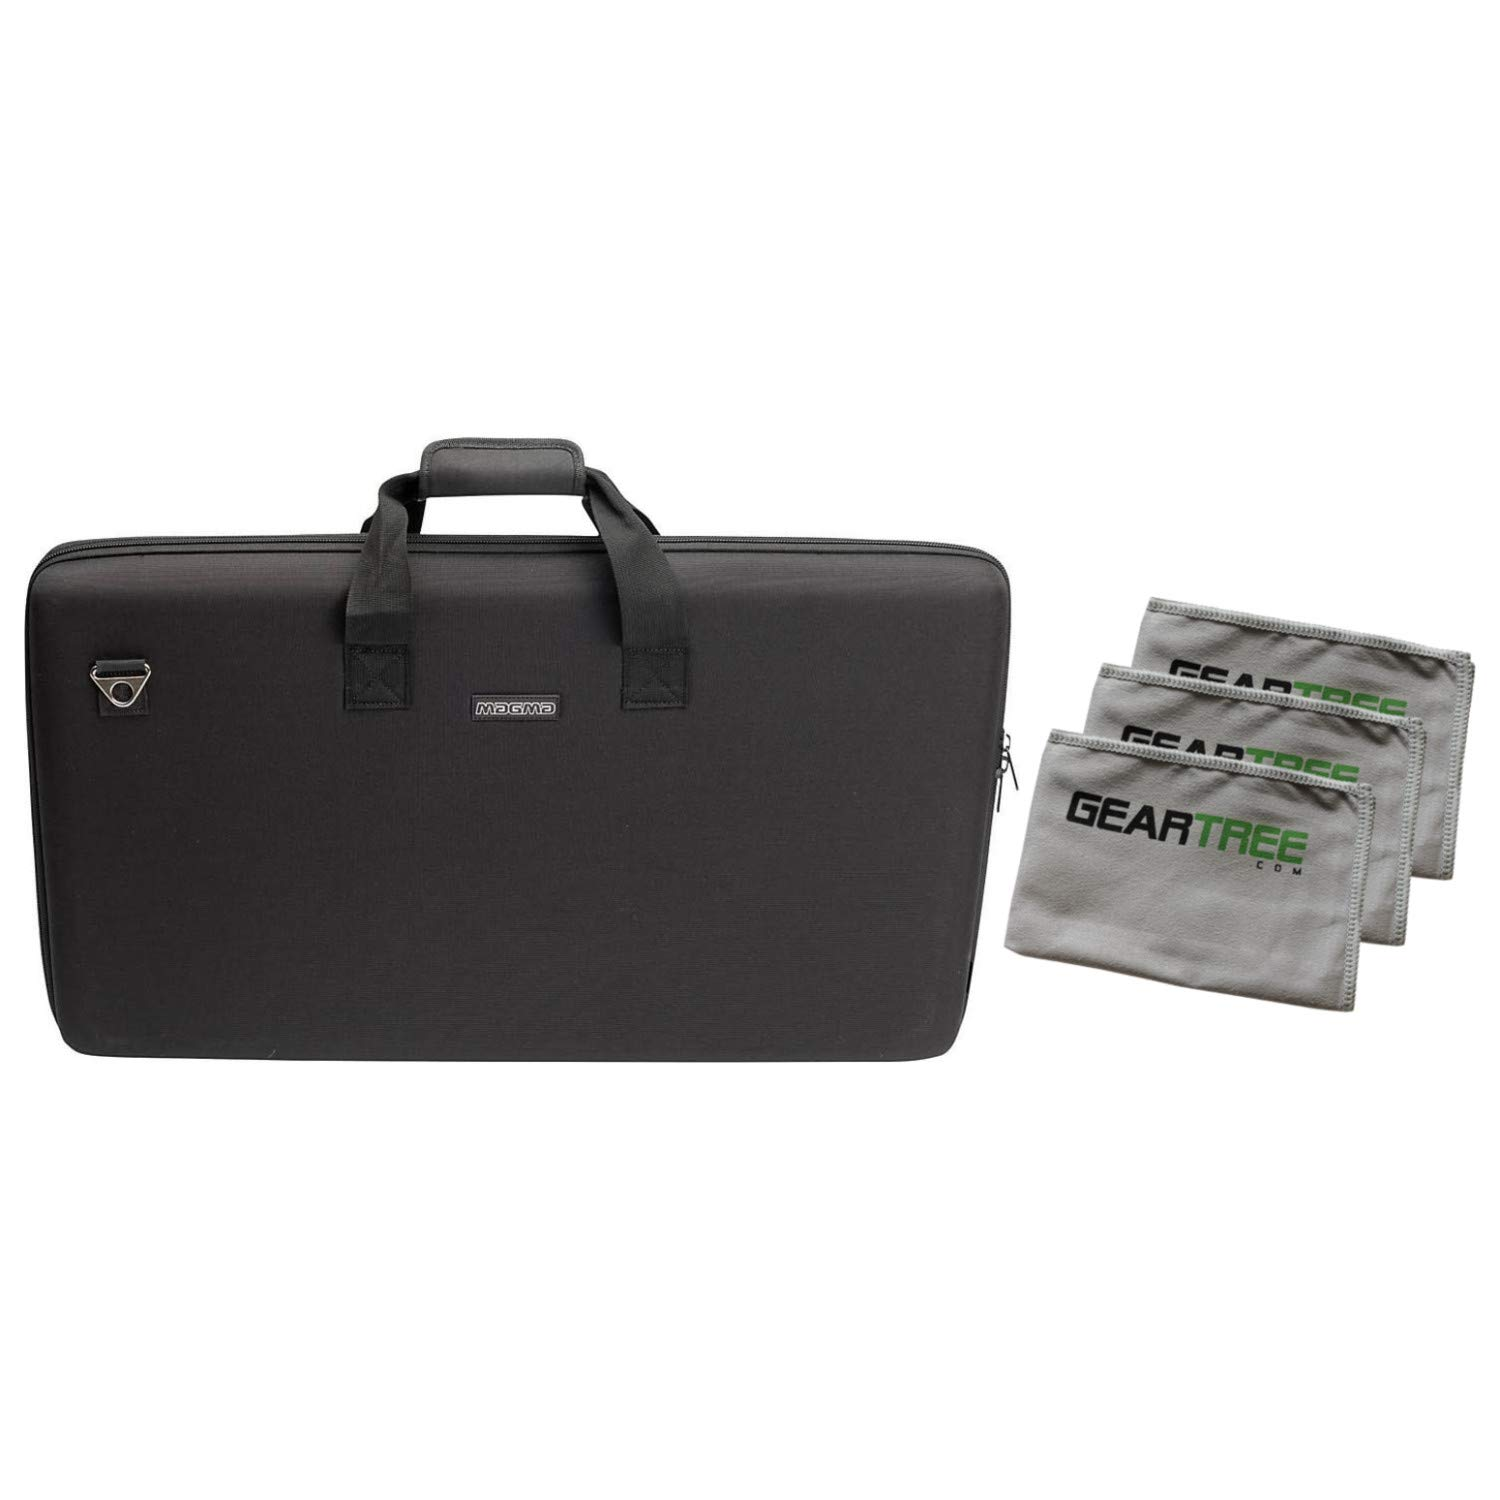 Magma CTRL DDJ-SX2/RX DJ Equipment Case Bundle w/Cloth 3-Pack